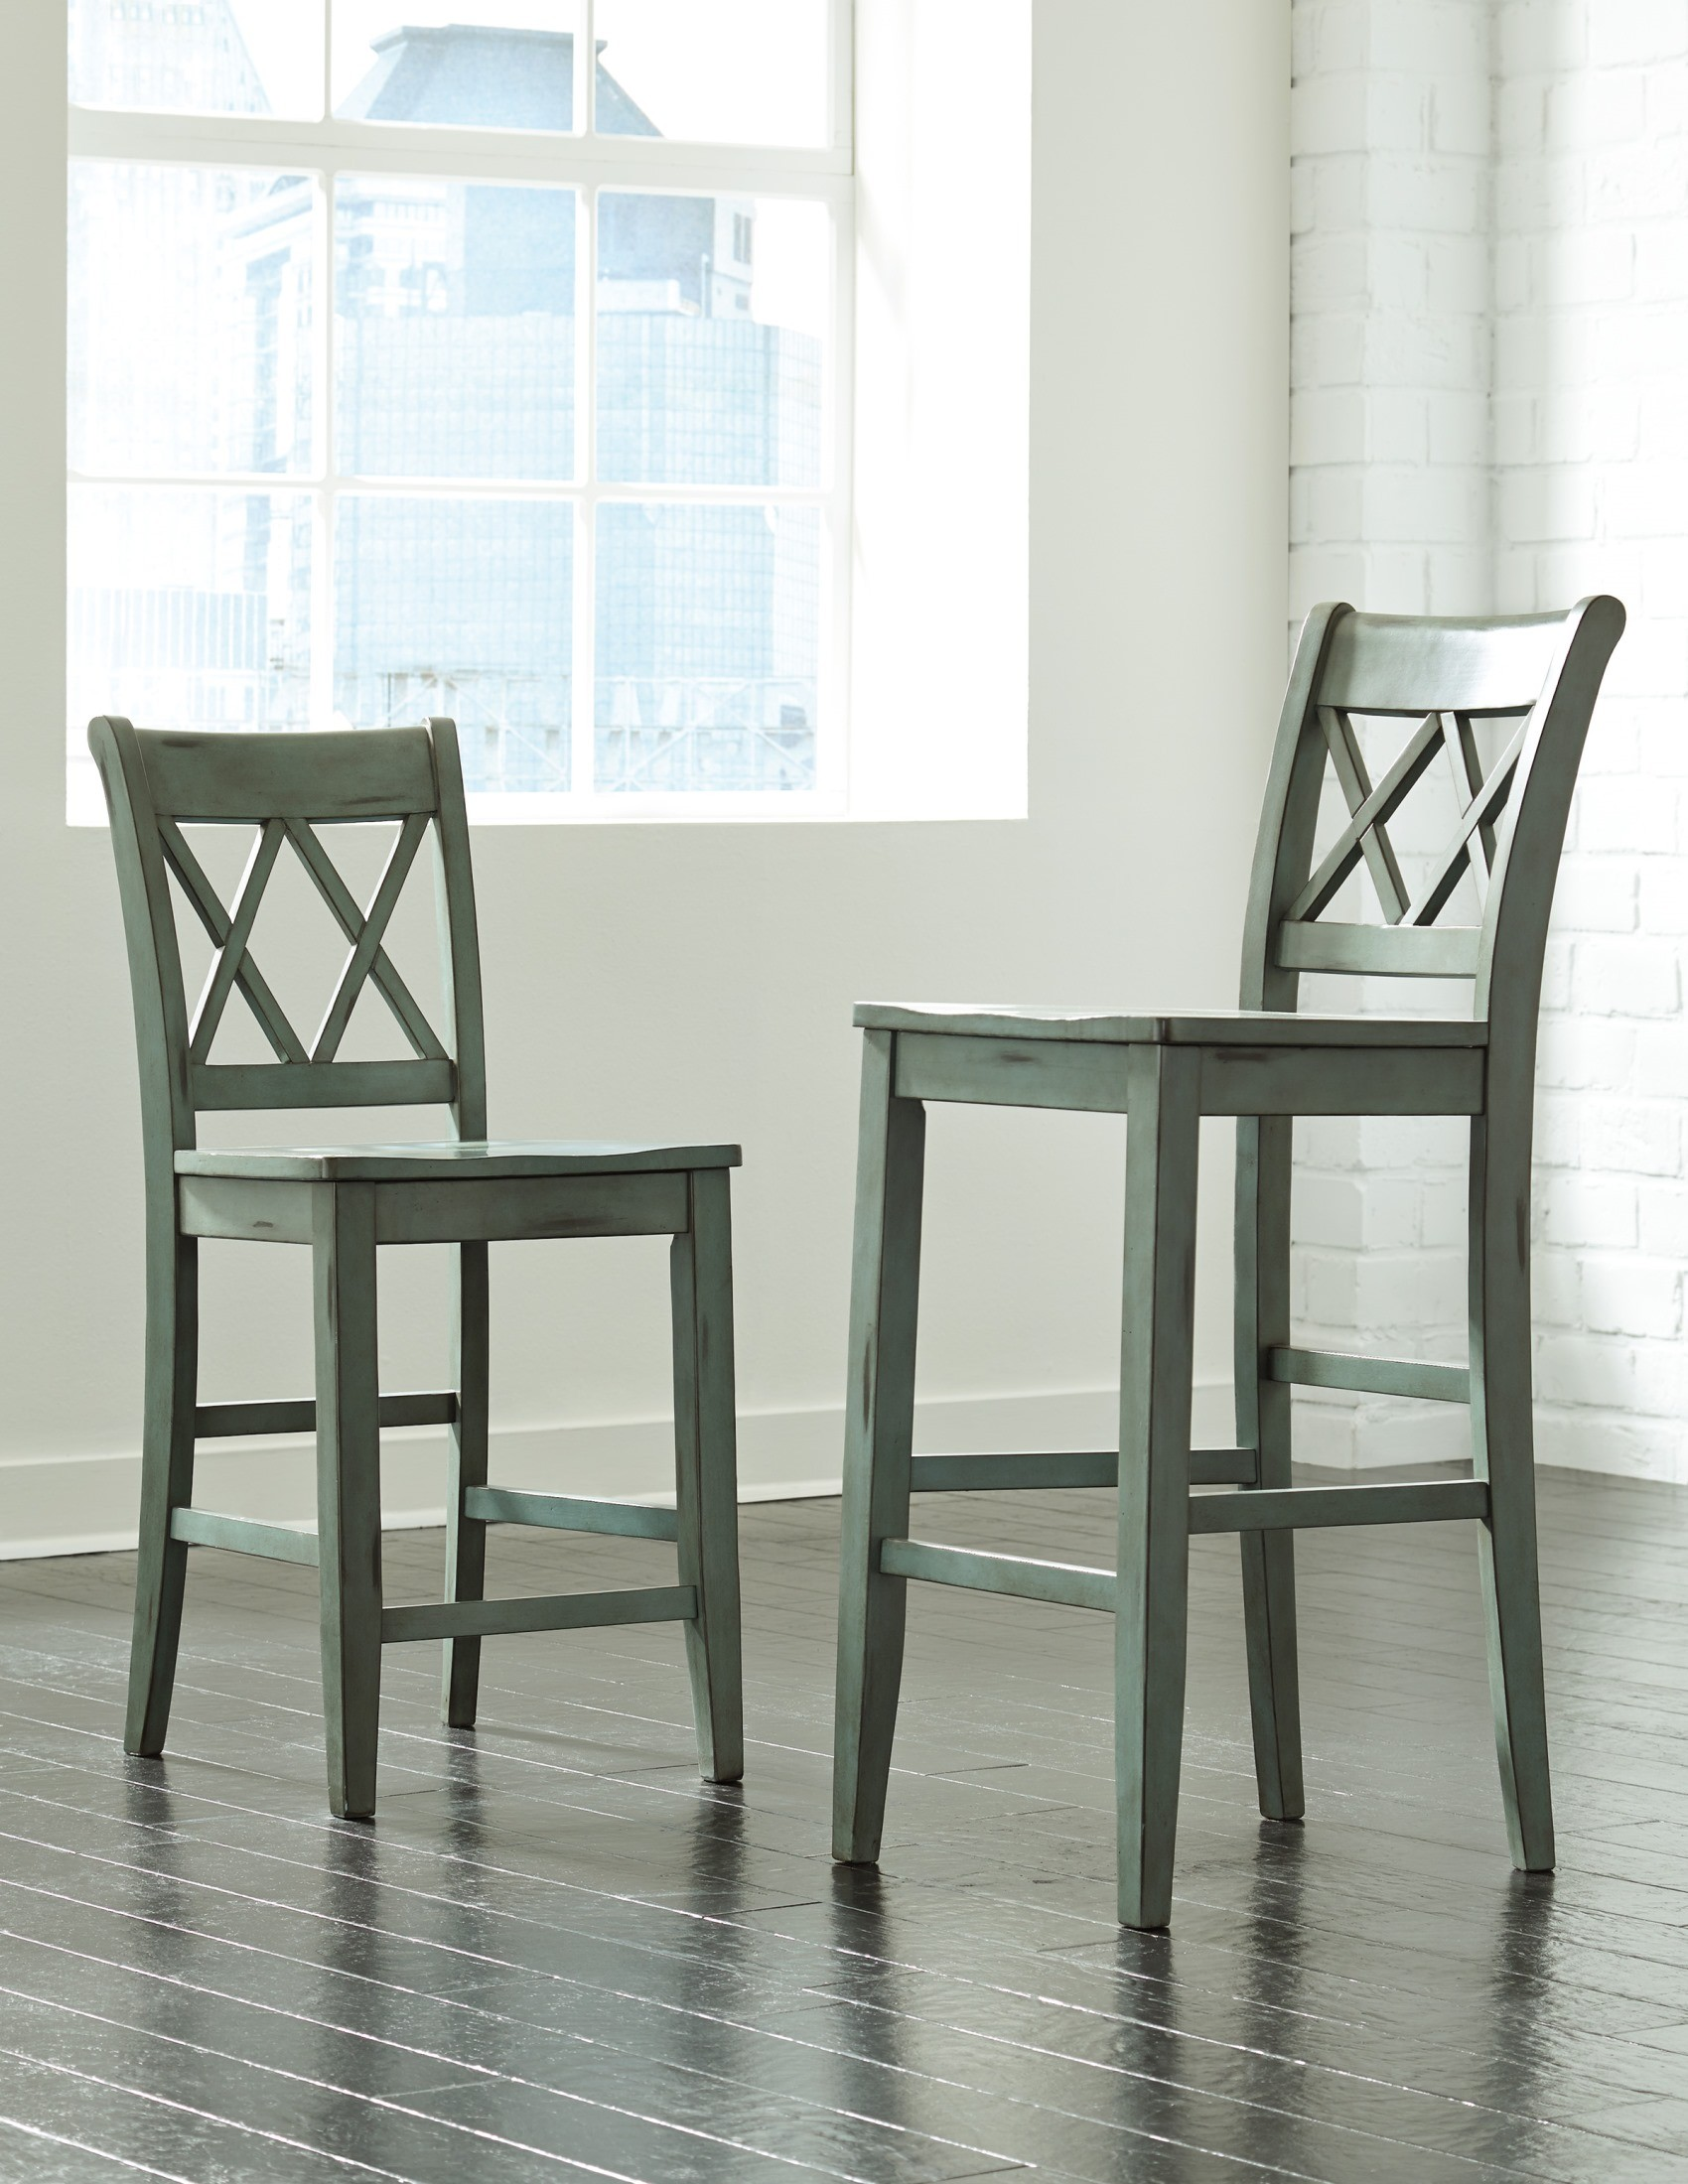 Mestler Tall Barstool Set of 2 from Ashley D540 130  : d540 124 130 from colemanfurniture.com size 1700 x 2200 jpeg 519kB